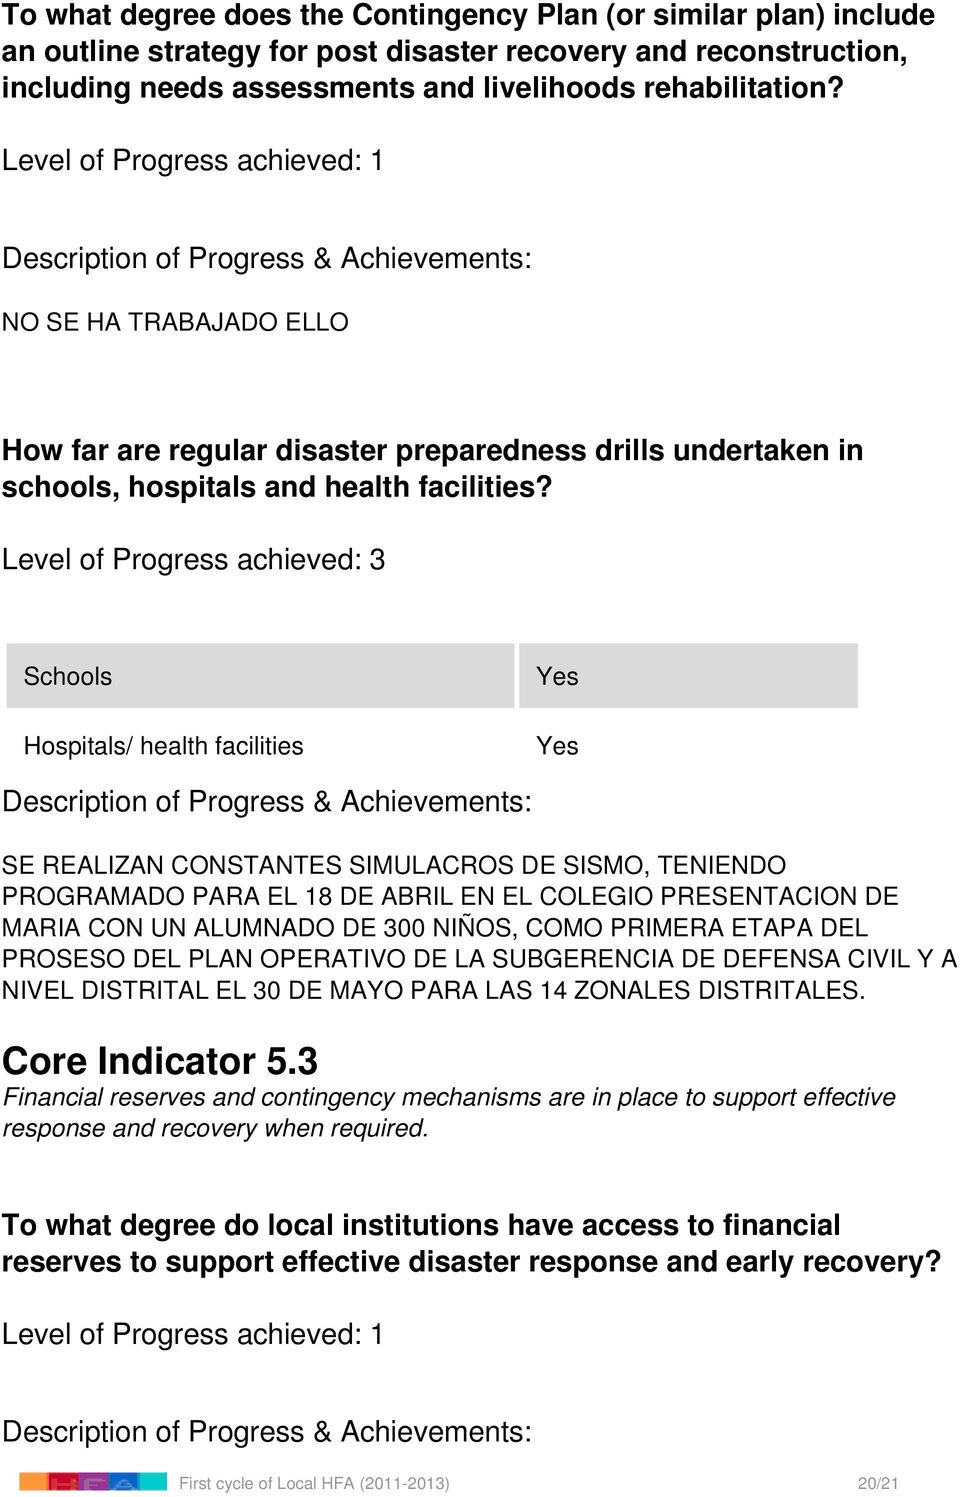 Level of Progress achieved: 3 Schools Hospitals/ health facilities Yes Yes SE REALIZAN CONSTANTES SIMULACROS DE SISMO, TENIENDO PROGRAMADO PARA EL 18 DE ABRIL EN EL COLEGIO PRESENTACION DE MARIA CON